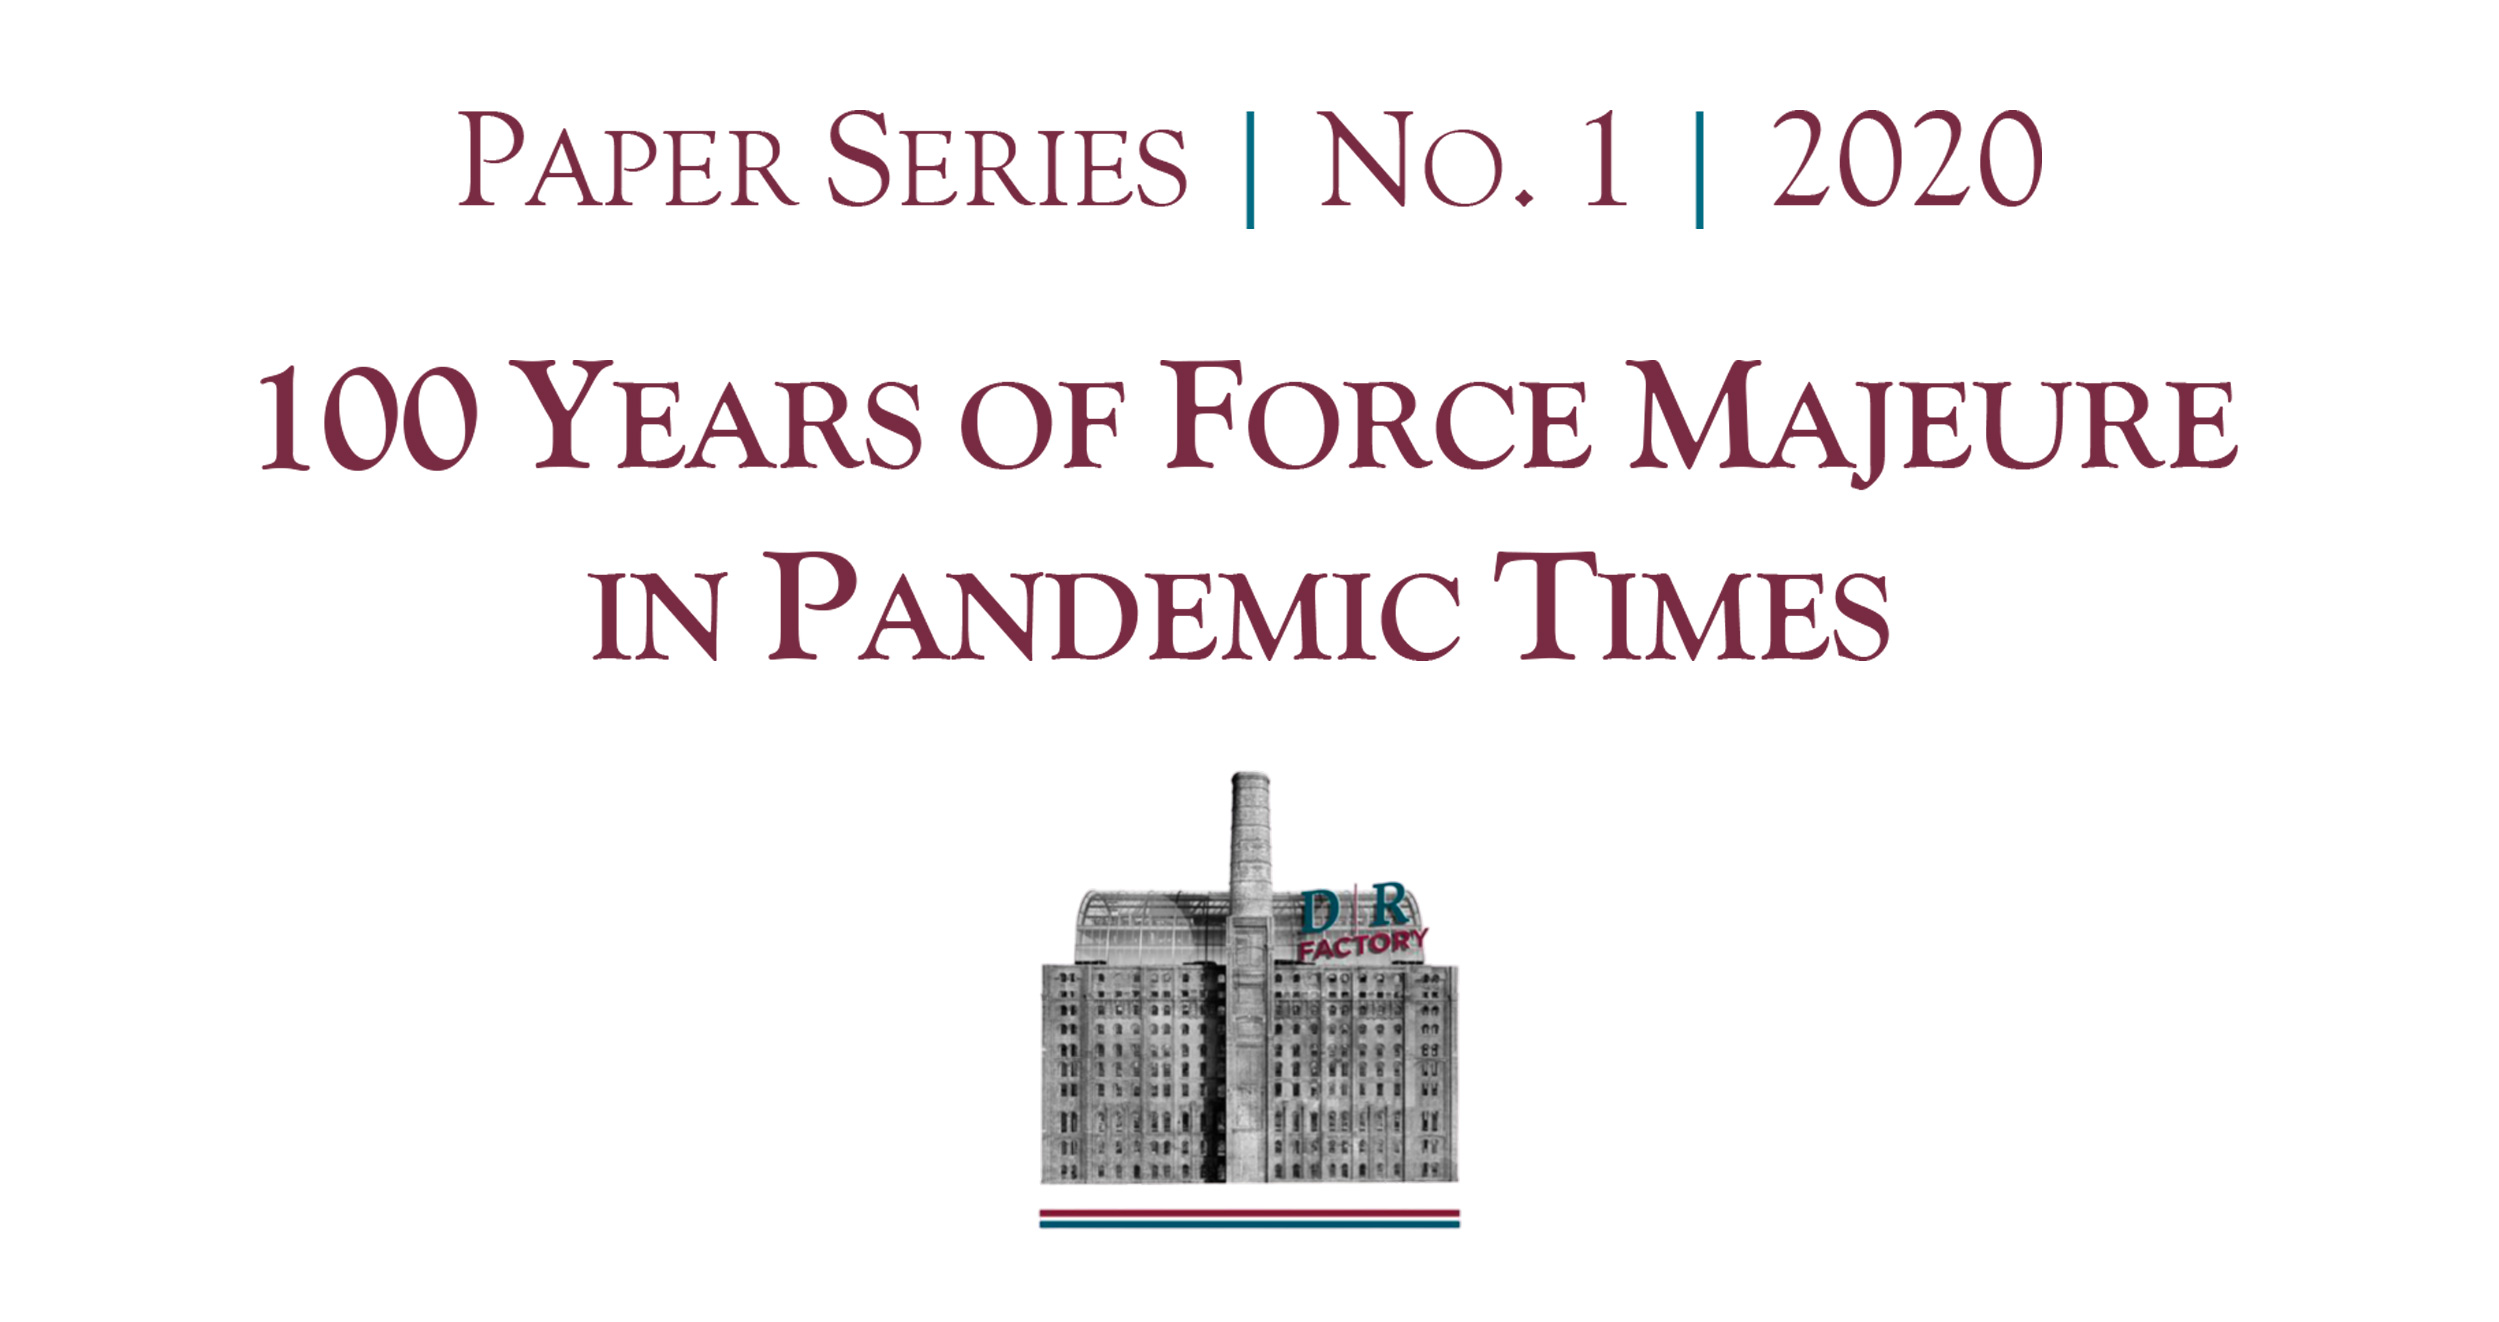 Paper Series: 100 Years of Force Majeure in Pandemic Times